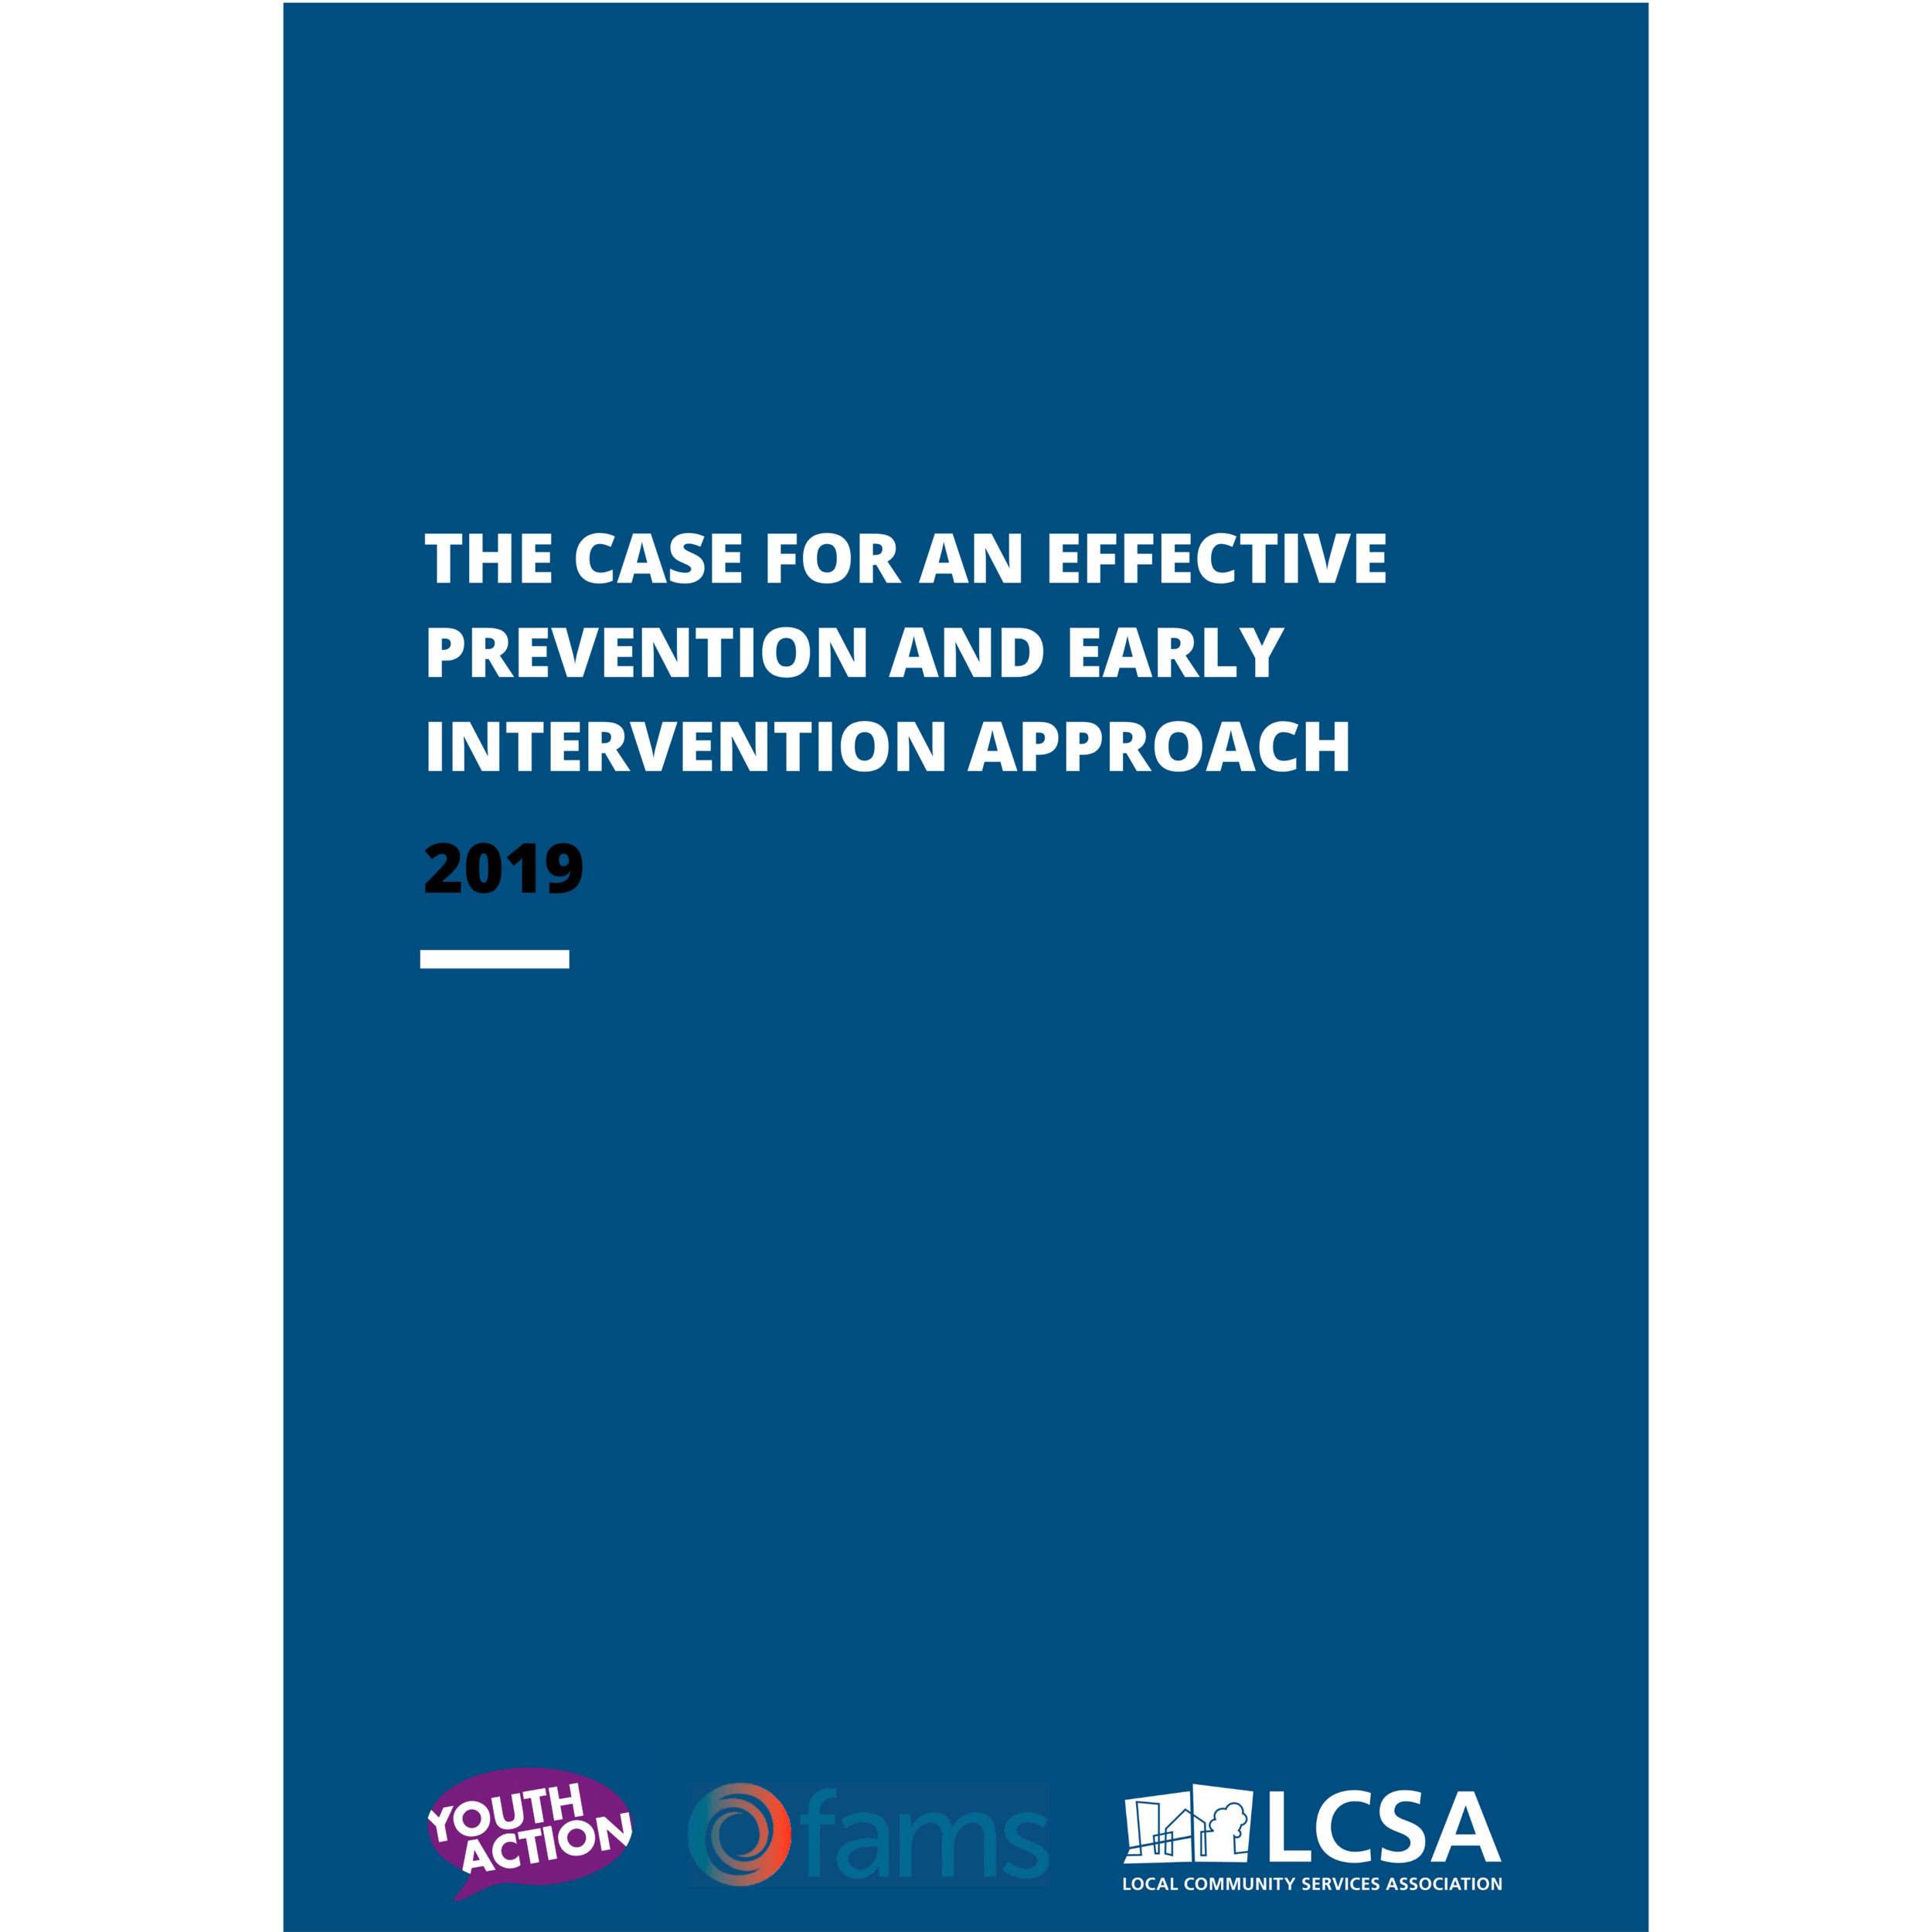 Early intervention approach modelling